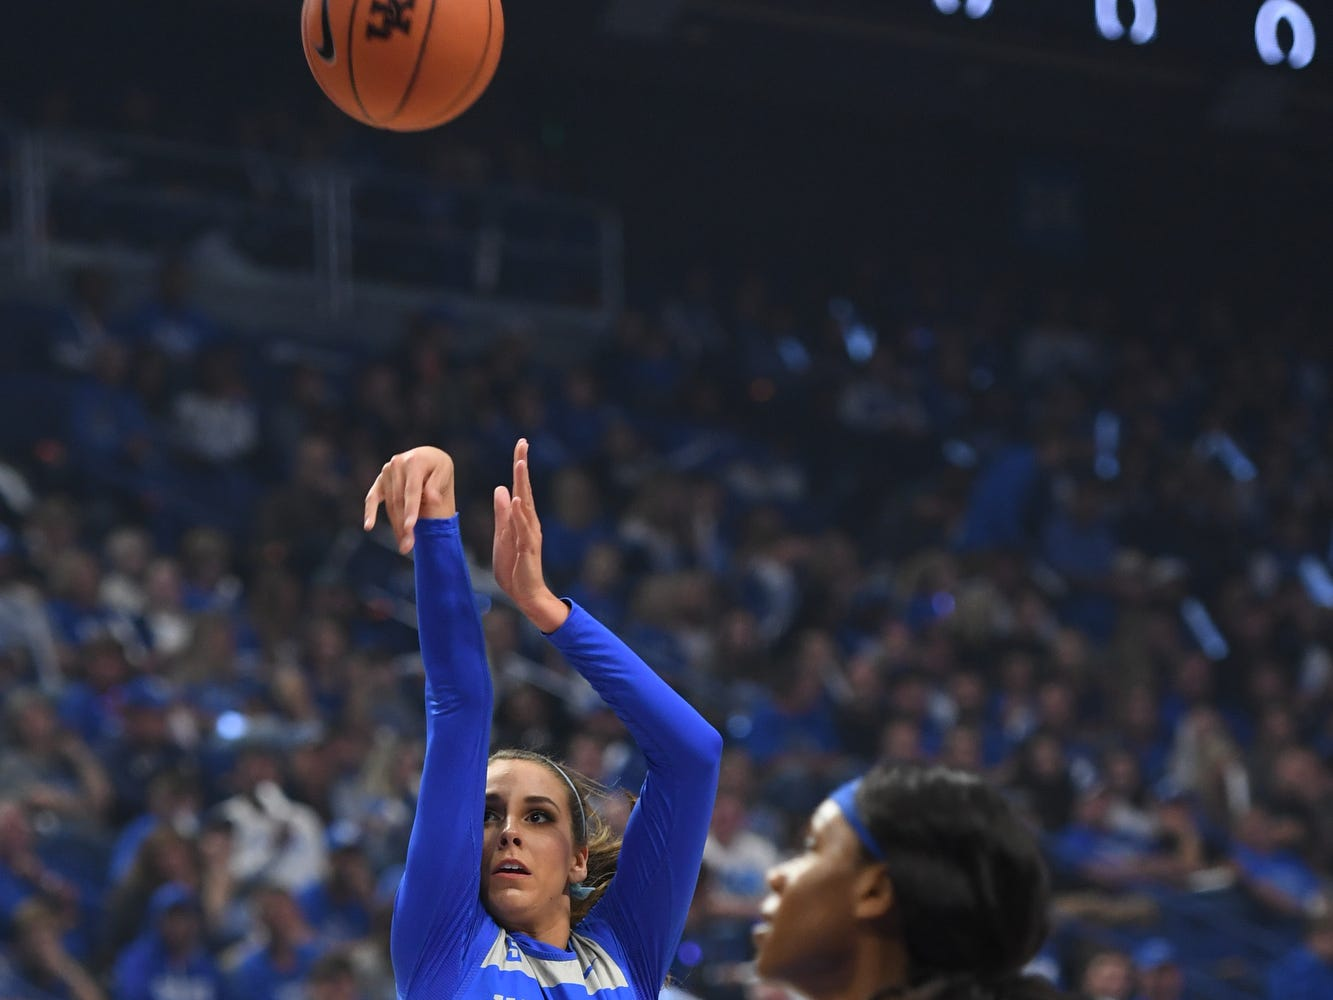 Freshman Blair Green shoots during the University of Kentucky basketball's annual Big Blue Madness at Rupp Arena in Lexington, Kentucky on Friday, Oct. 12, 2018.